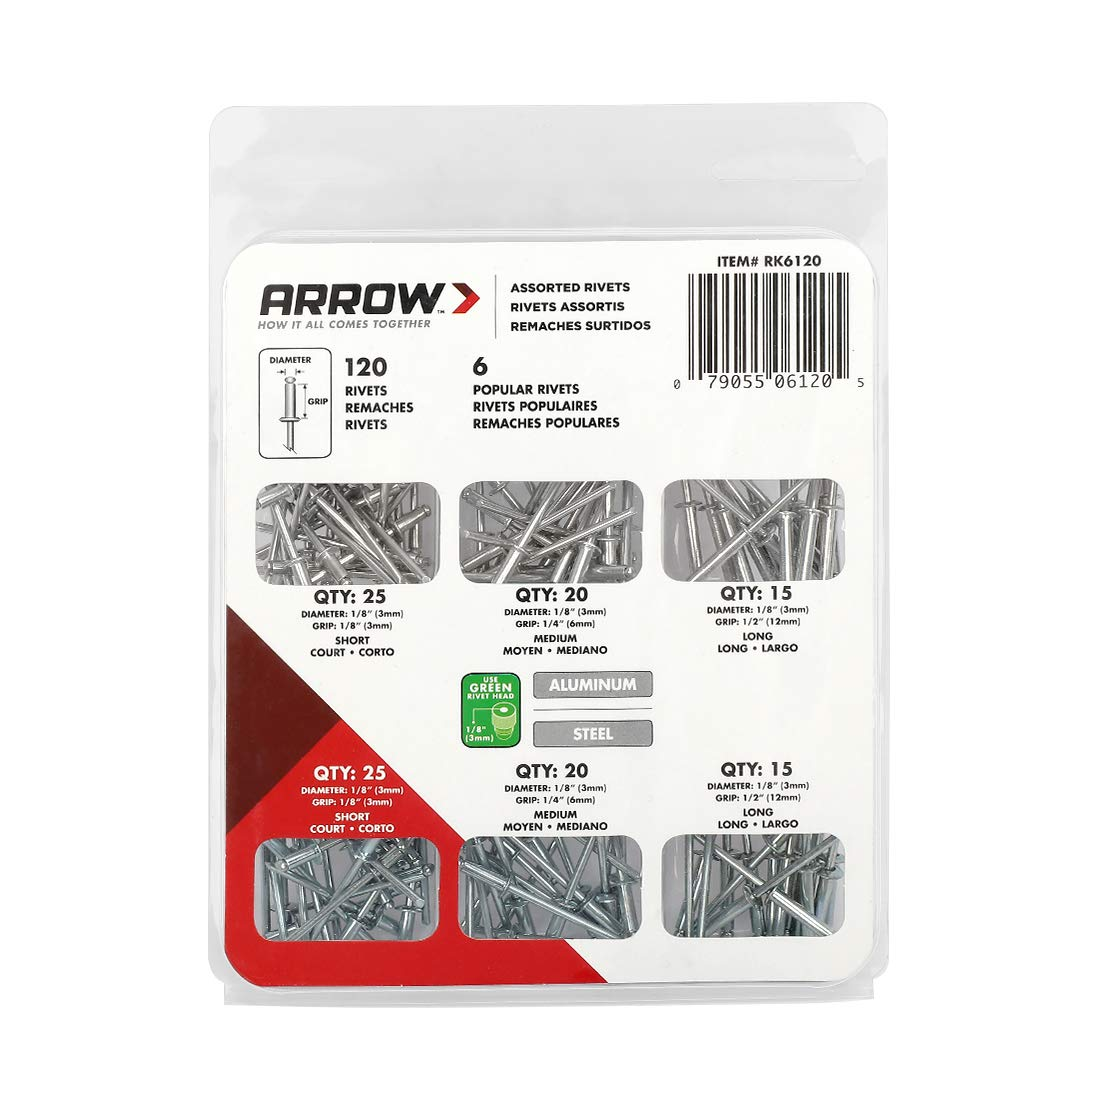 ARROW Heavy Duty Riveter Kit, Professional Pop Rivet Gun with Assorted 120 Rivets by ARROW (Image #6)